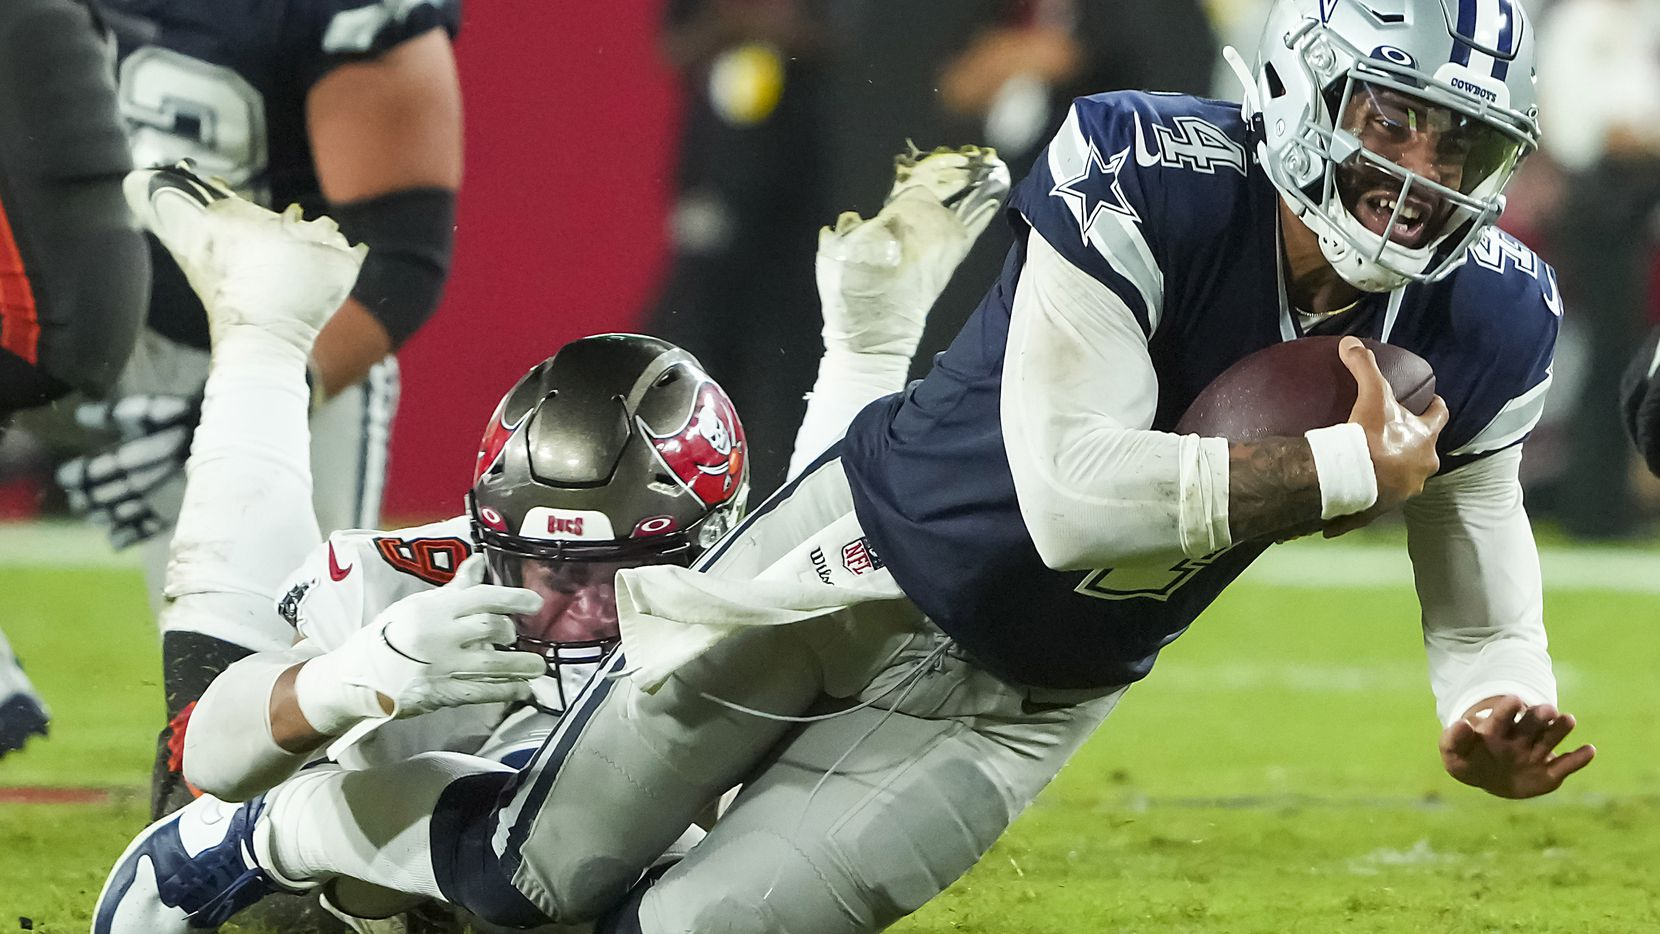 Dallas Cowboys quarterback Dak Prescott (4) is tripped up by Tampa Bay Buccaneers linebacker Joe Tryon-Shoyinka (9) during the first half of an NFL football game at Raymond James Stadium on Thursday, Sept. 9, 2021, in Tampa, Fla.